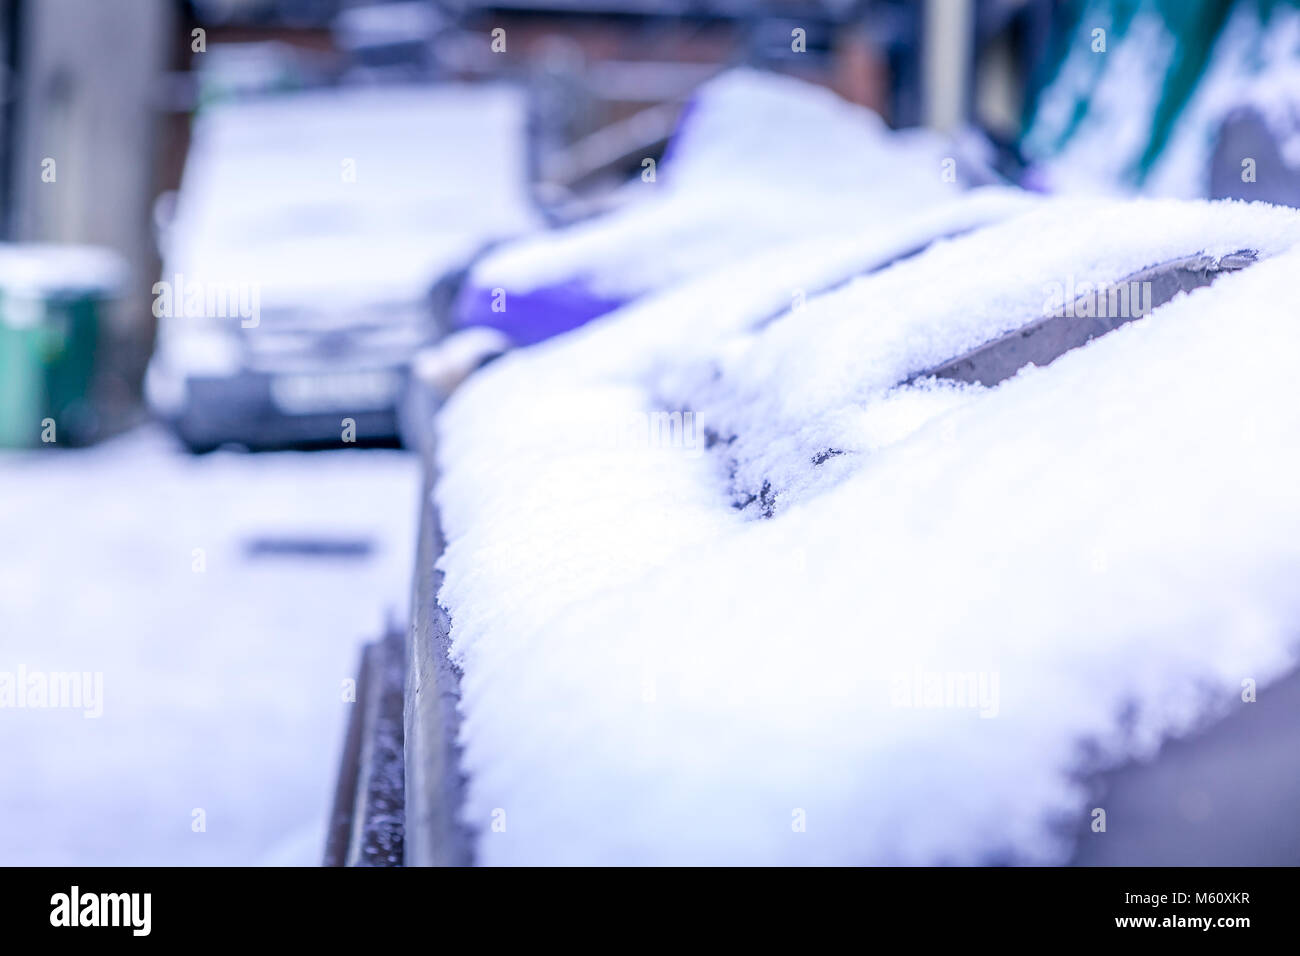 Manchester, England. 27th February 2018. UK temperatures plunge as the Beast from the East brings heavy snowfall. - Stock Image